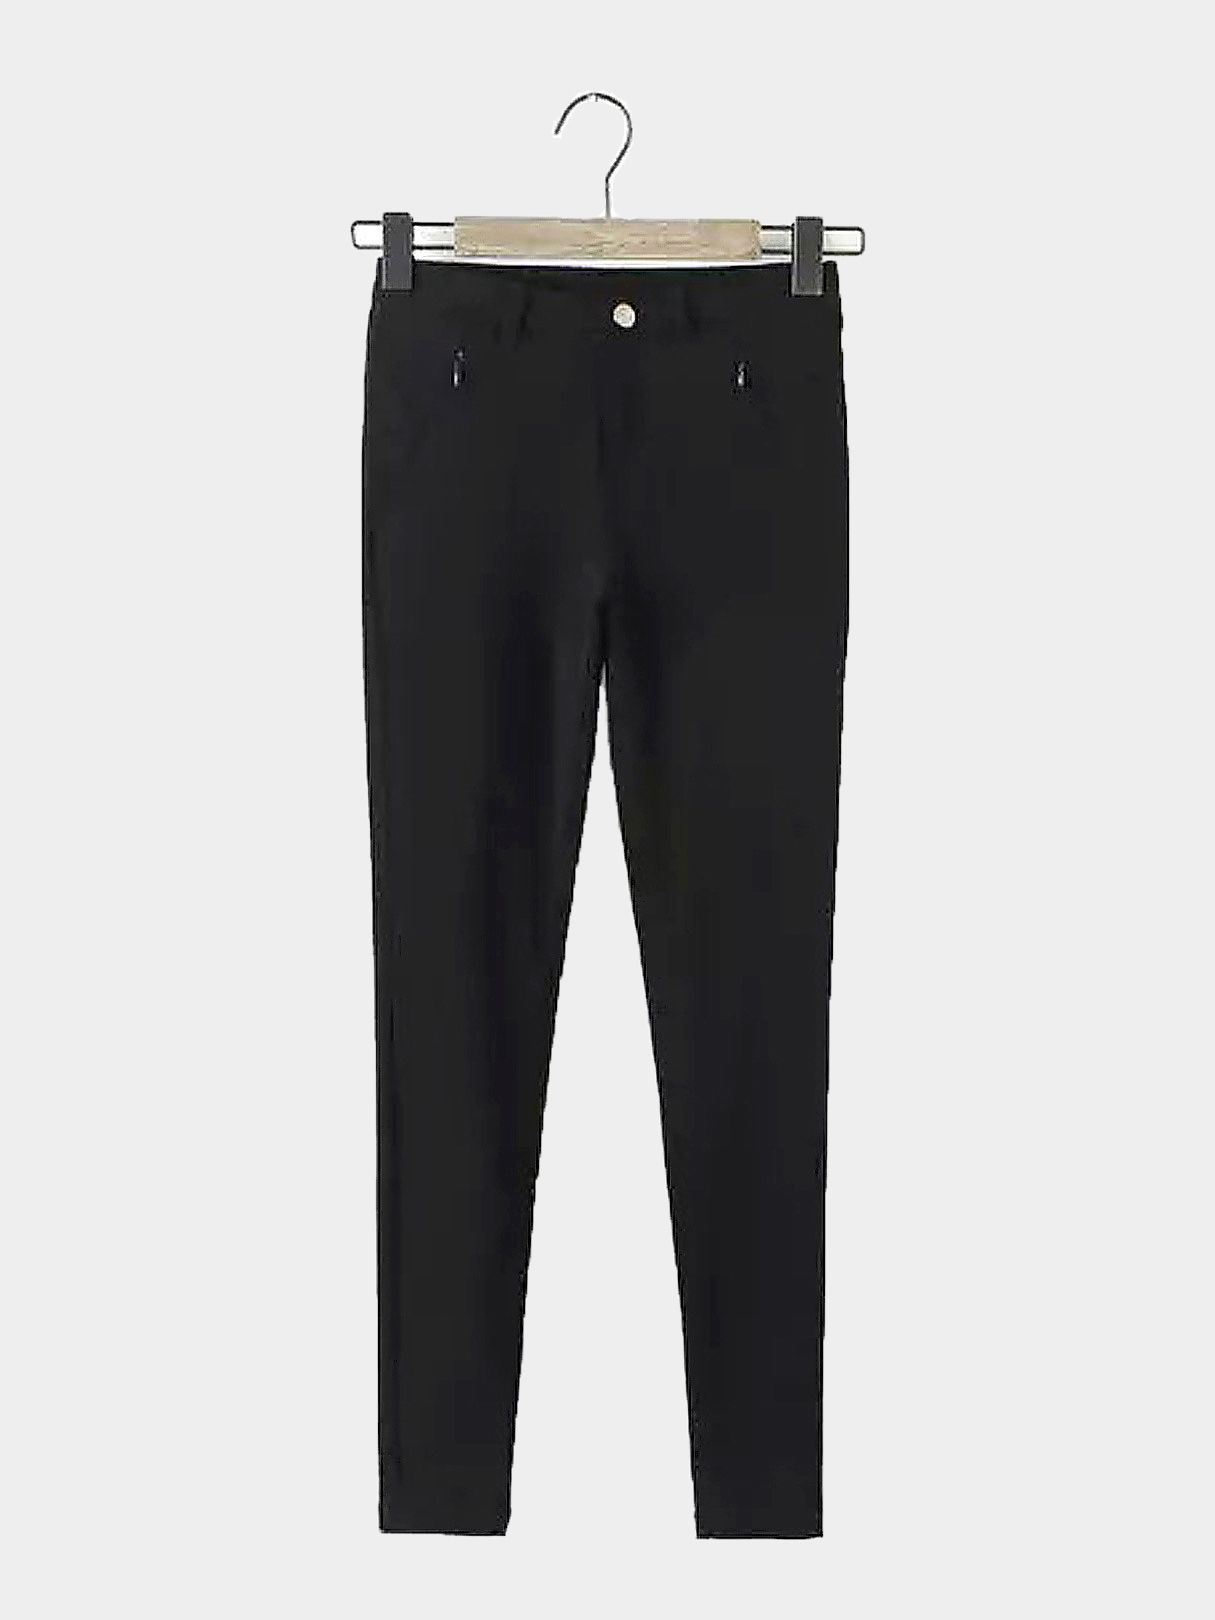 Black Trousers with Zipped Pocket